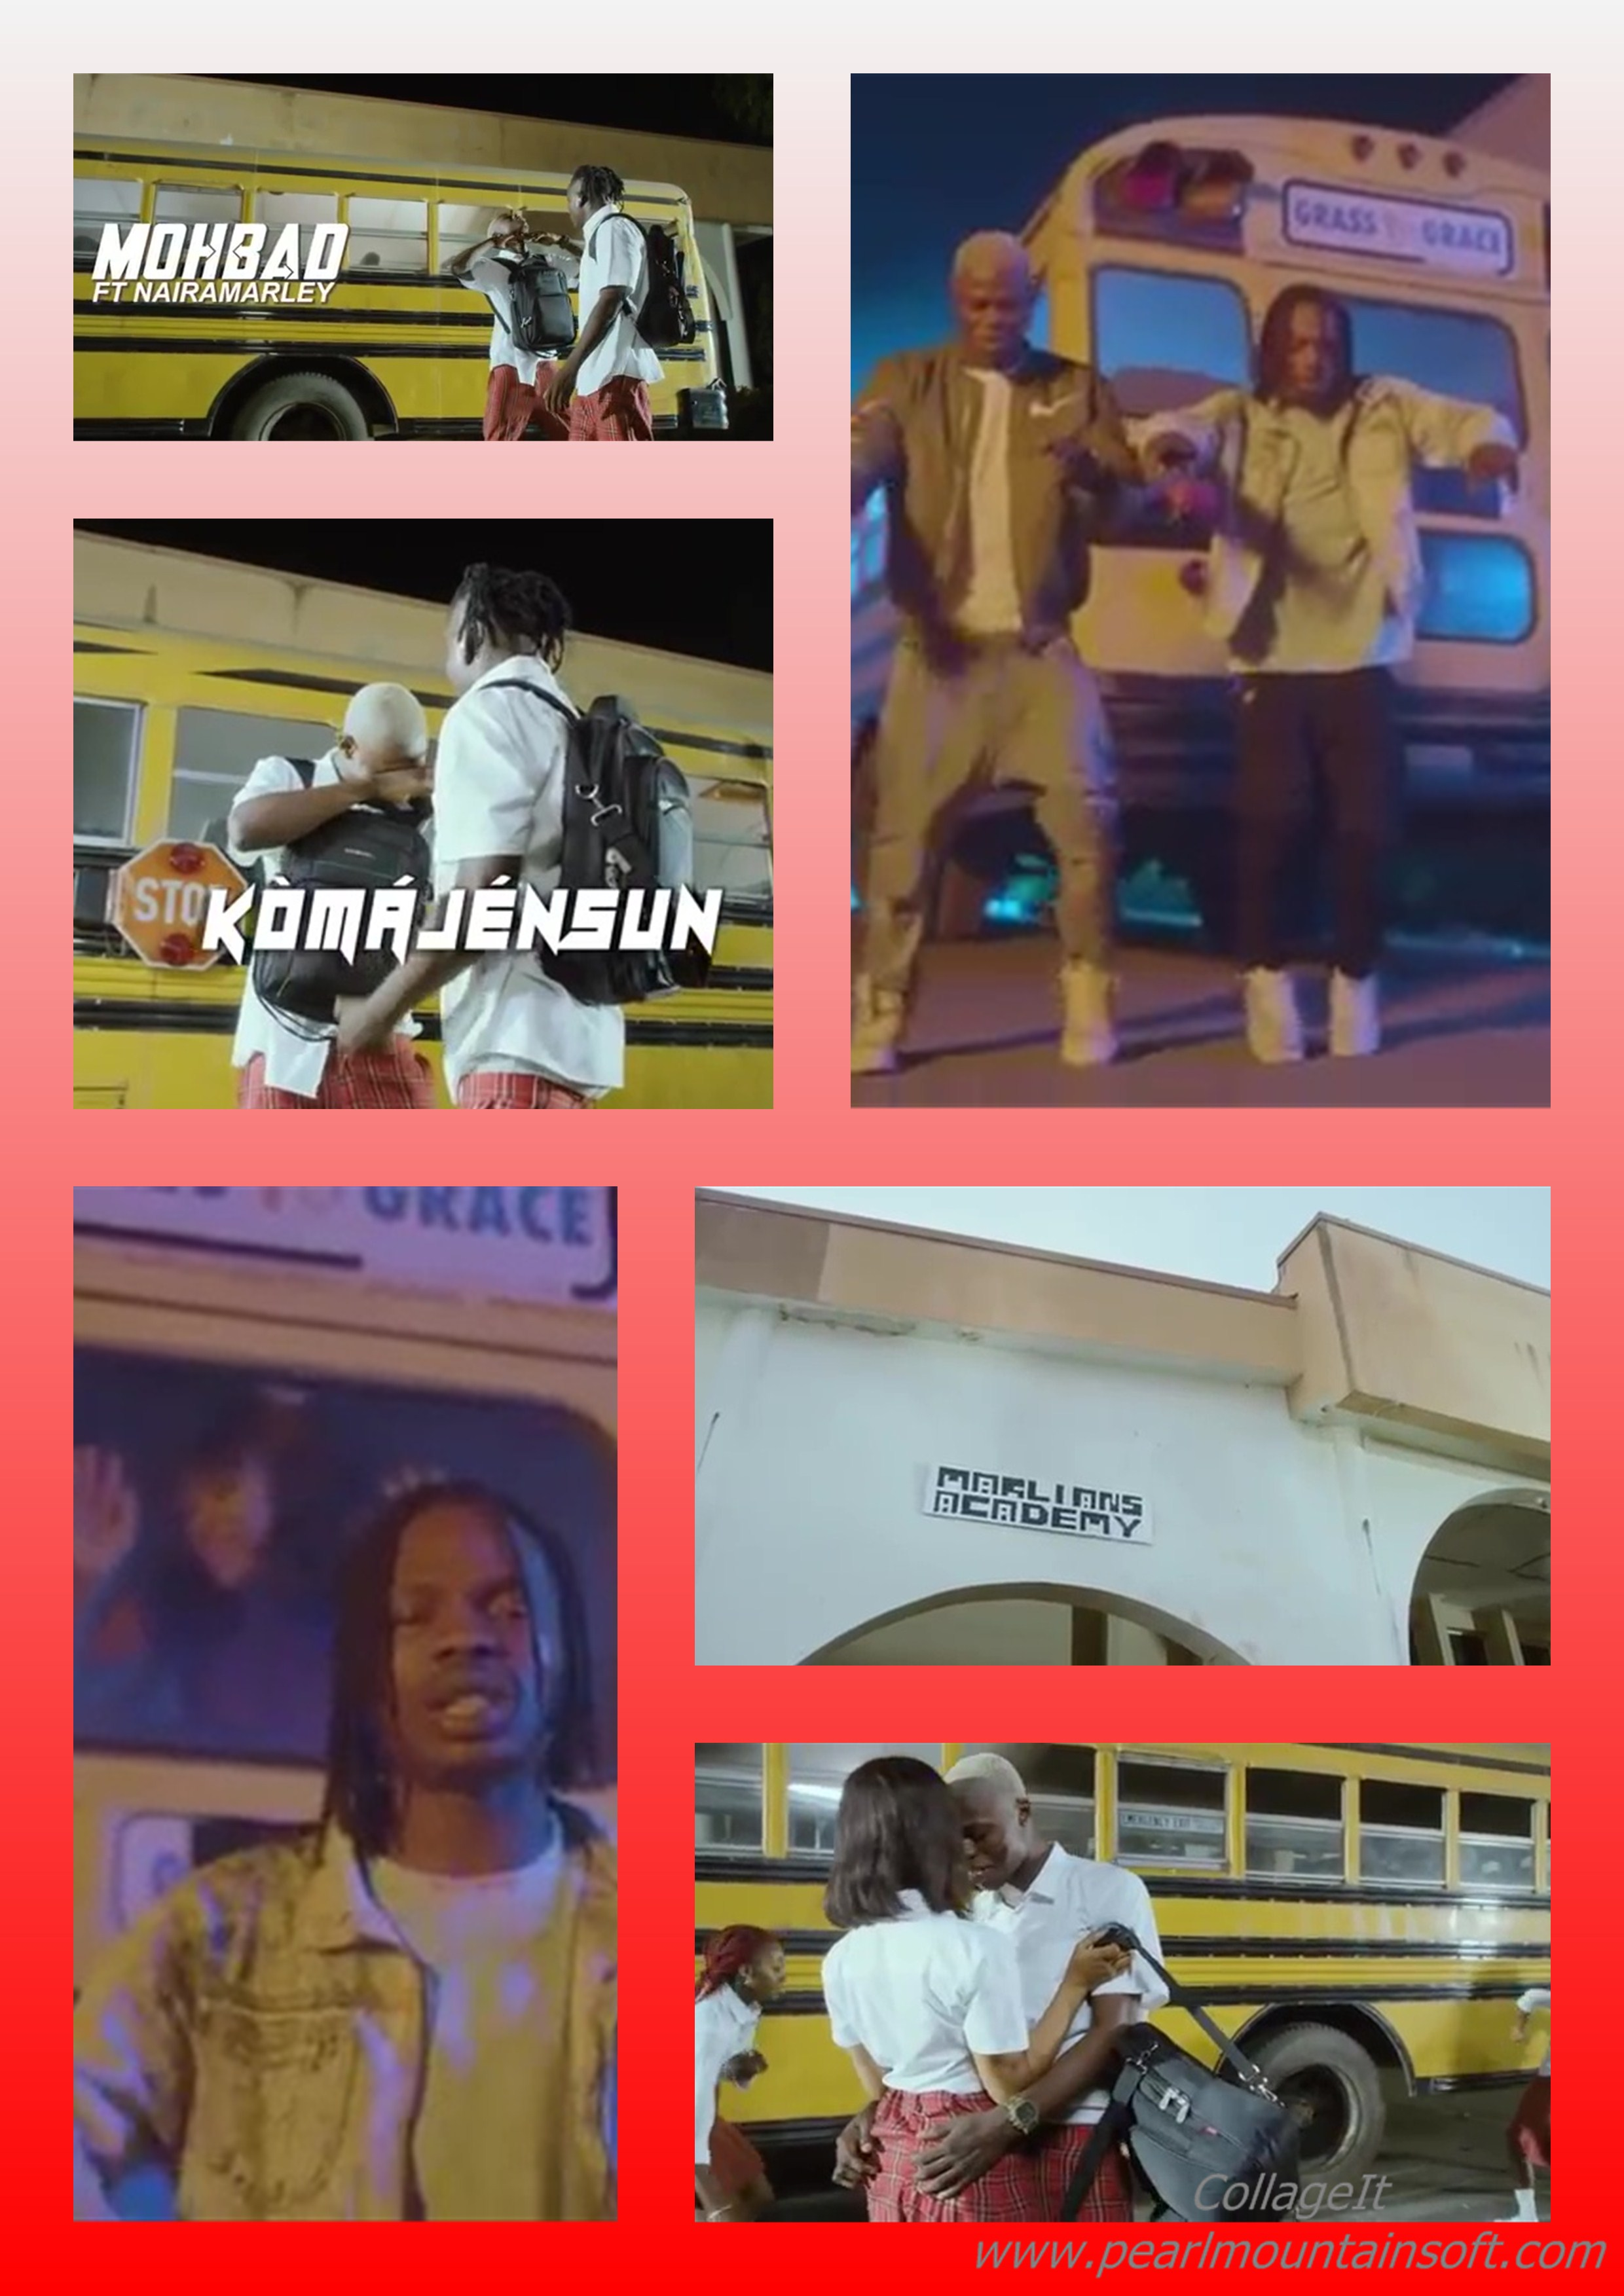 """(+LYRICS+MEANING+TRANSLATION) MUSIC REVIEW: KOMAJENSUN BY MOHBAD FT NAIRA MALEY """"AWON SET NAIRA MARLEY""""                                        +WHY USE A SECONDARY SCHOOL SETTING FOR THIS RU…"""""""